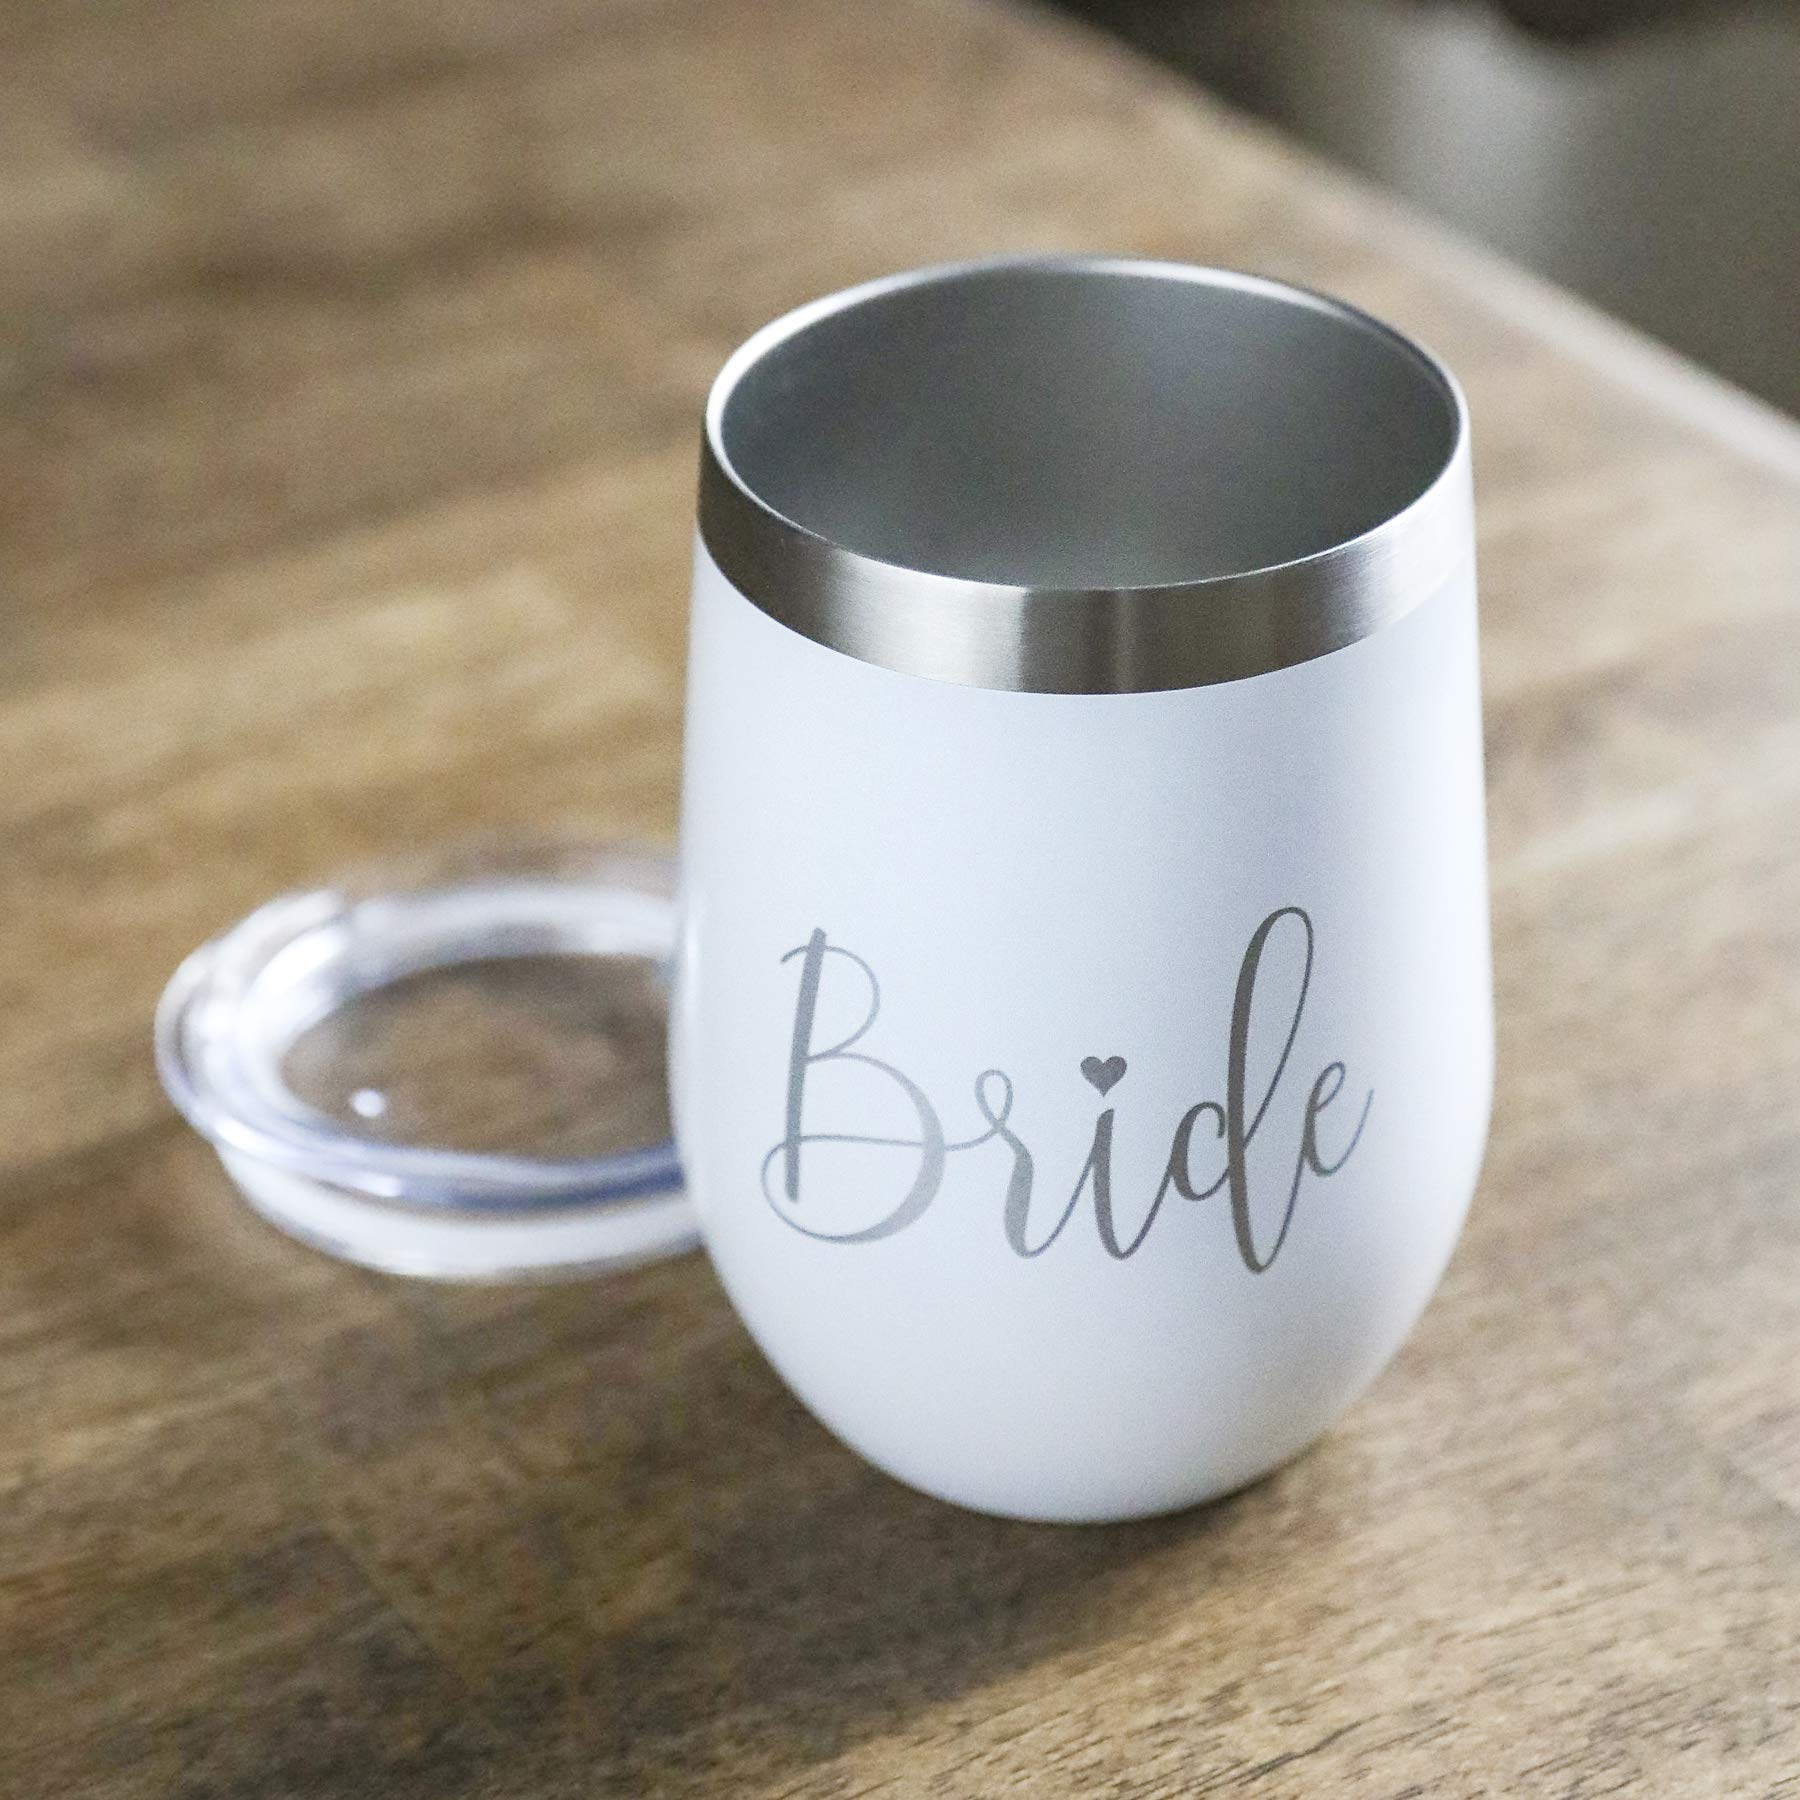 Bride Wine Tumbler with Lid - 12 oz Double Wall Vacuumed Wine, White and Silver Stainless Steel Cup, Perfect Engagement Party, Bridal Shower, Bachelorette Party or Wedding Gift - BPA FREE by Bliss Collections (Image #3)